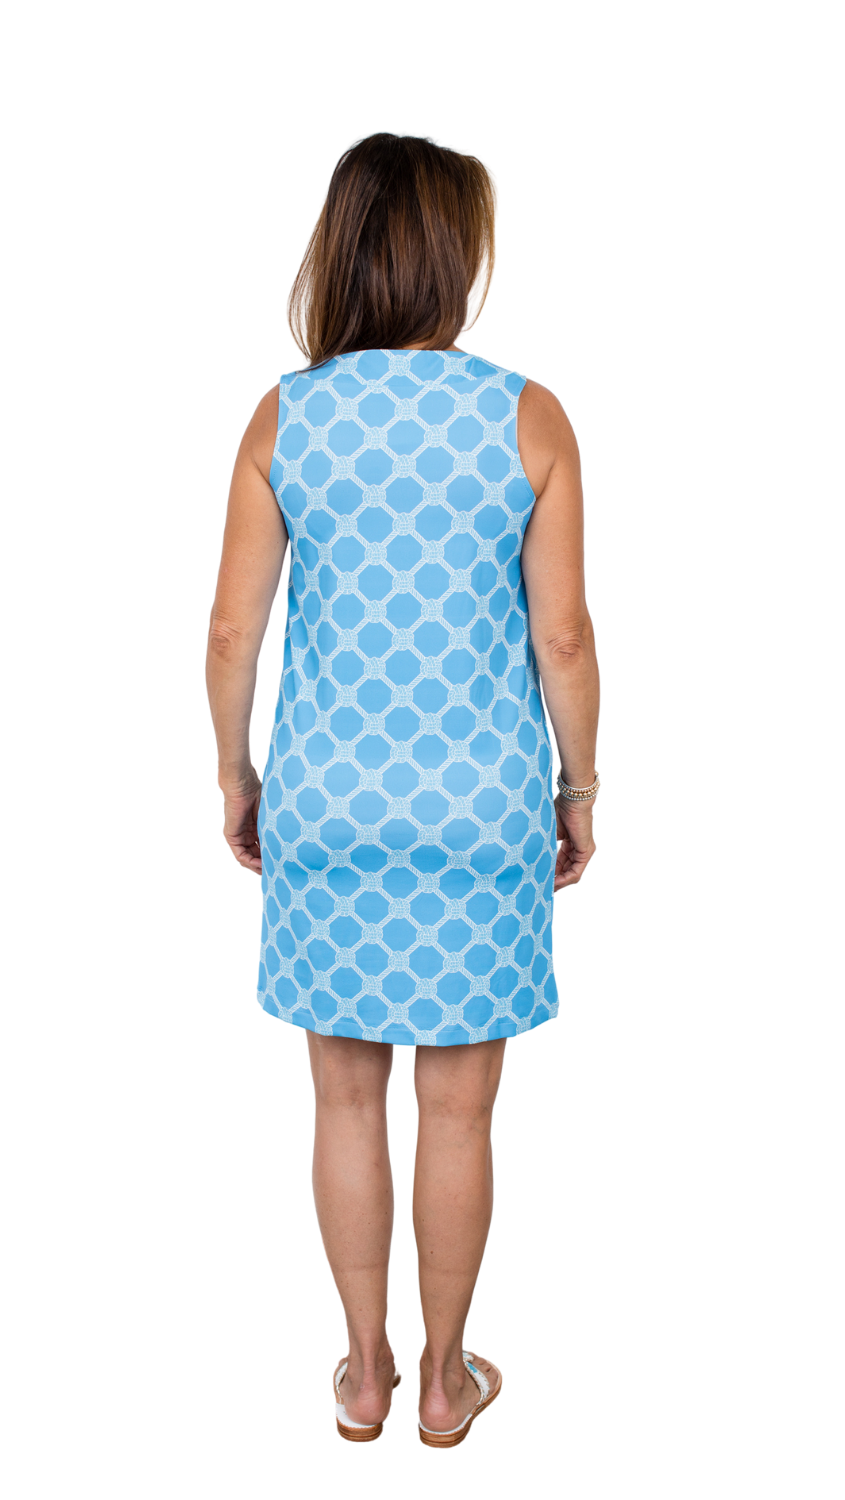 Yacht Club Shift Dress - Summer Knot Alaskan Blue